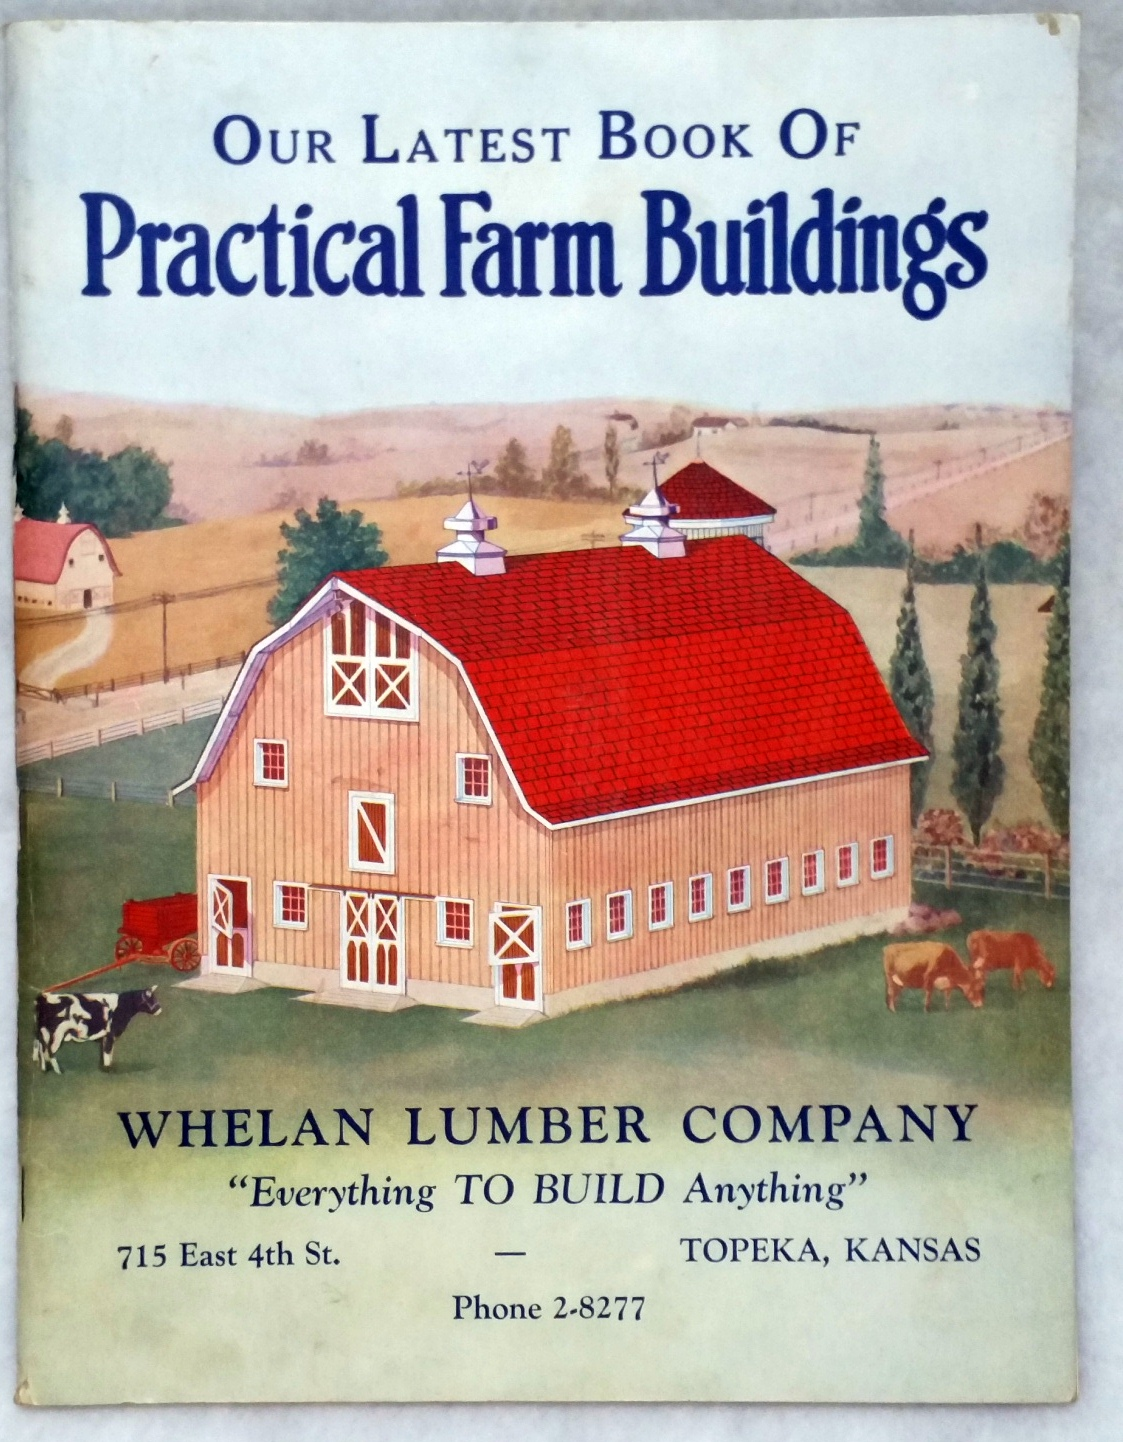 Image for Whelan Lumber Company:  Our Latest Book of Practical Farm Buildings